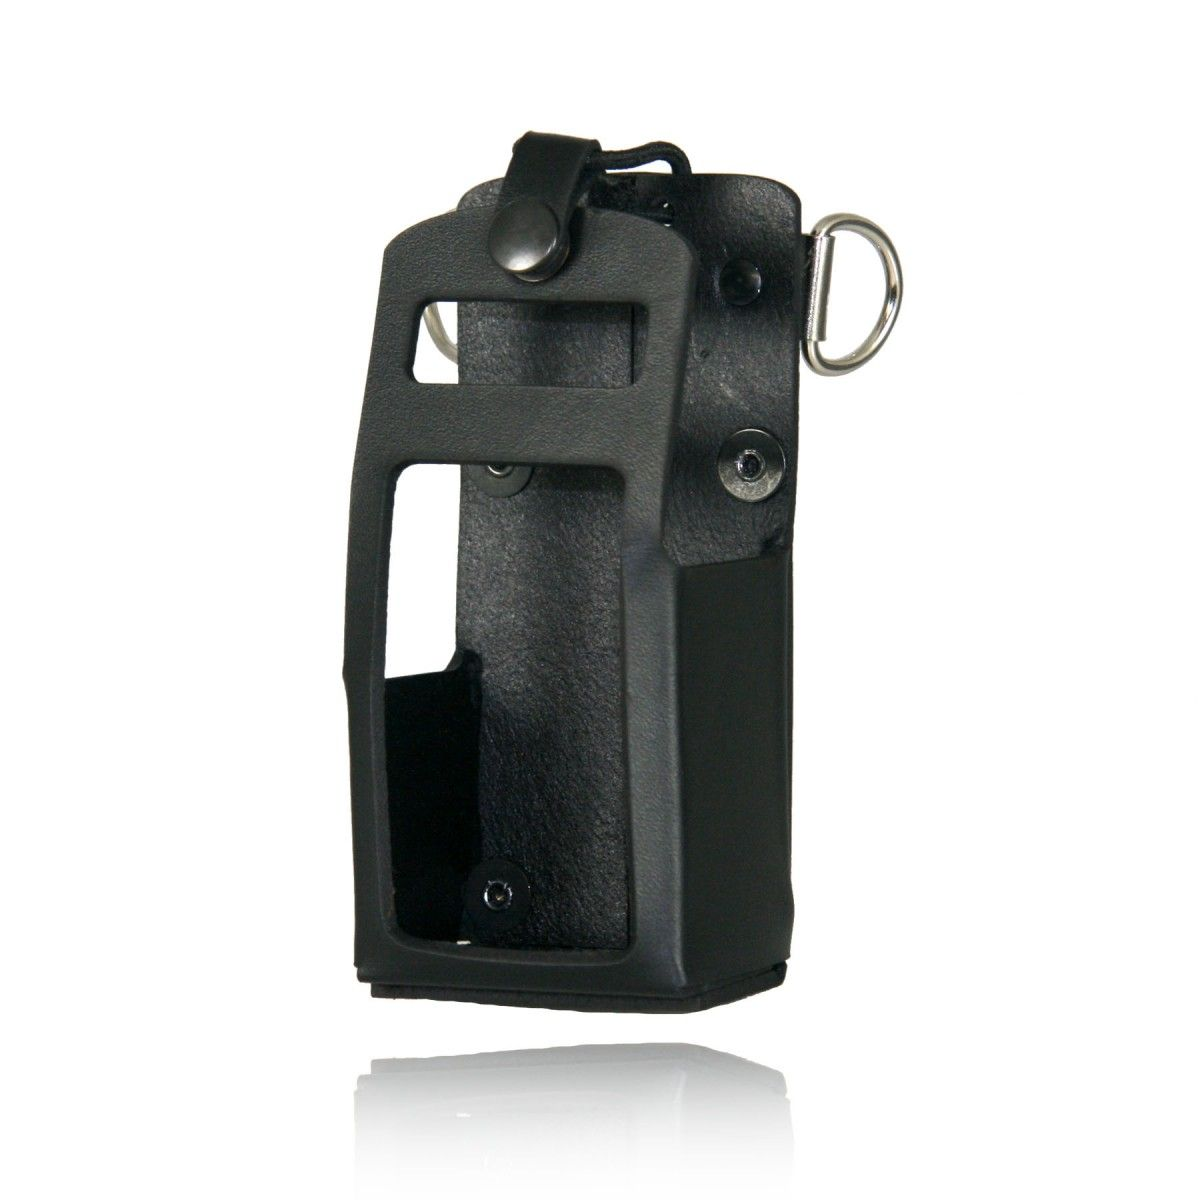 Firefighter's Radio Holder for Motorola APX 4000